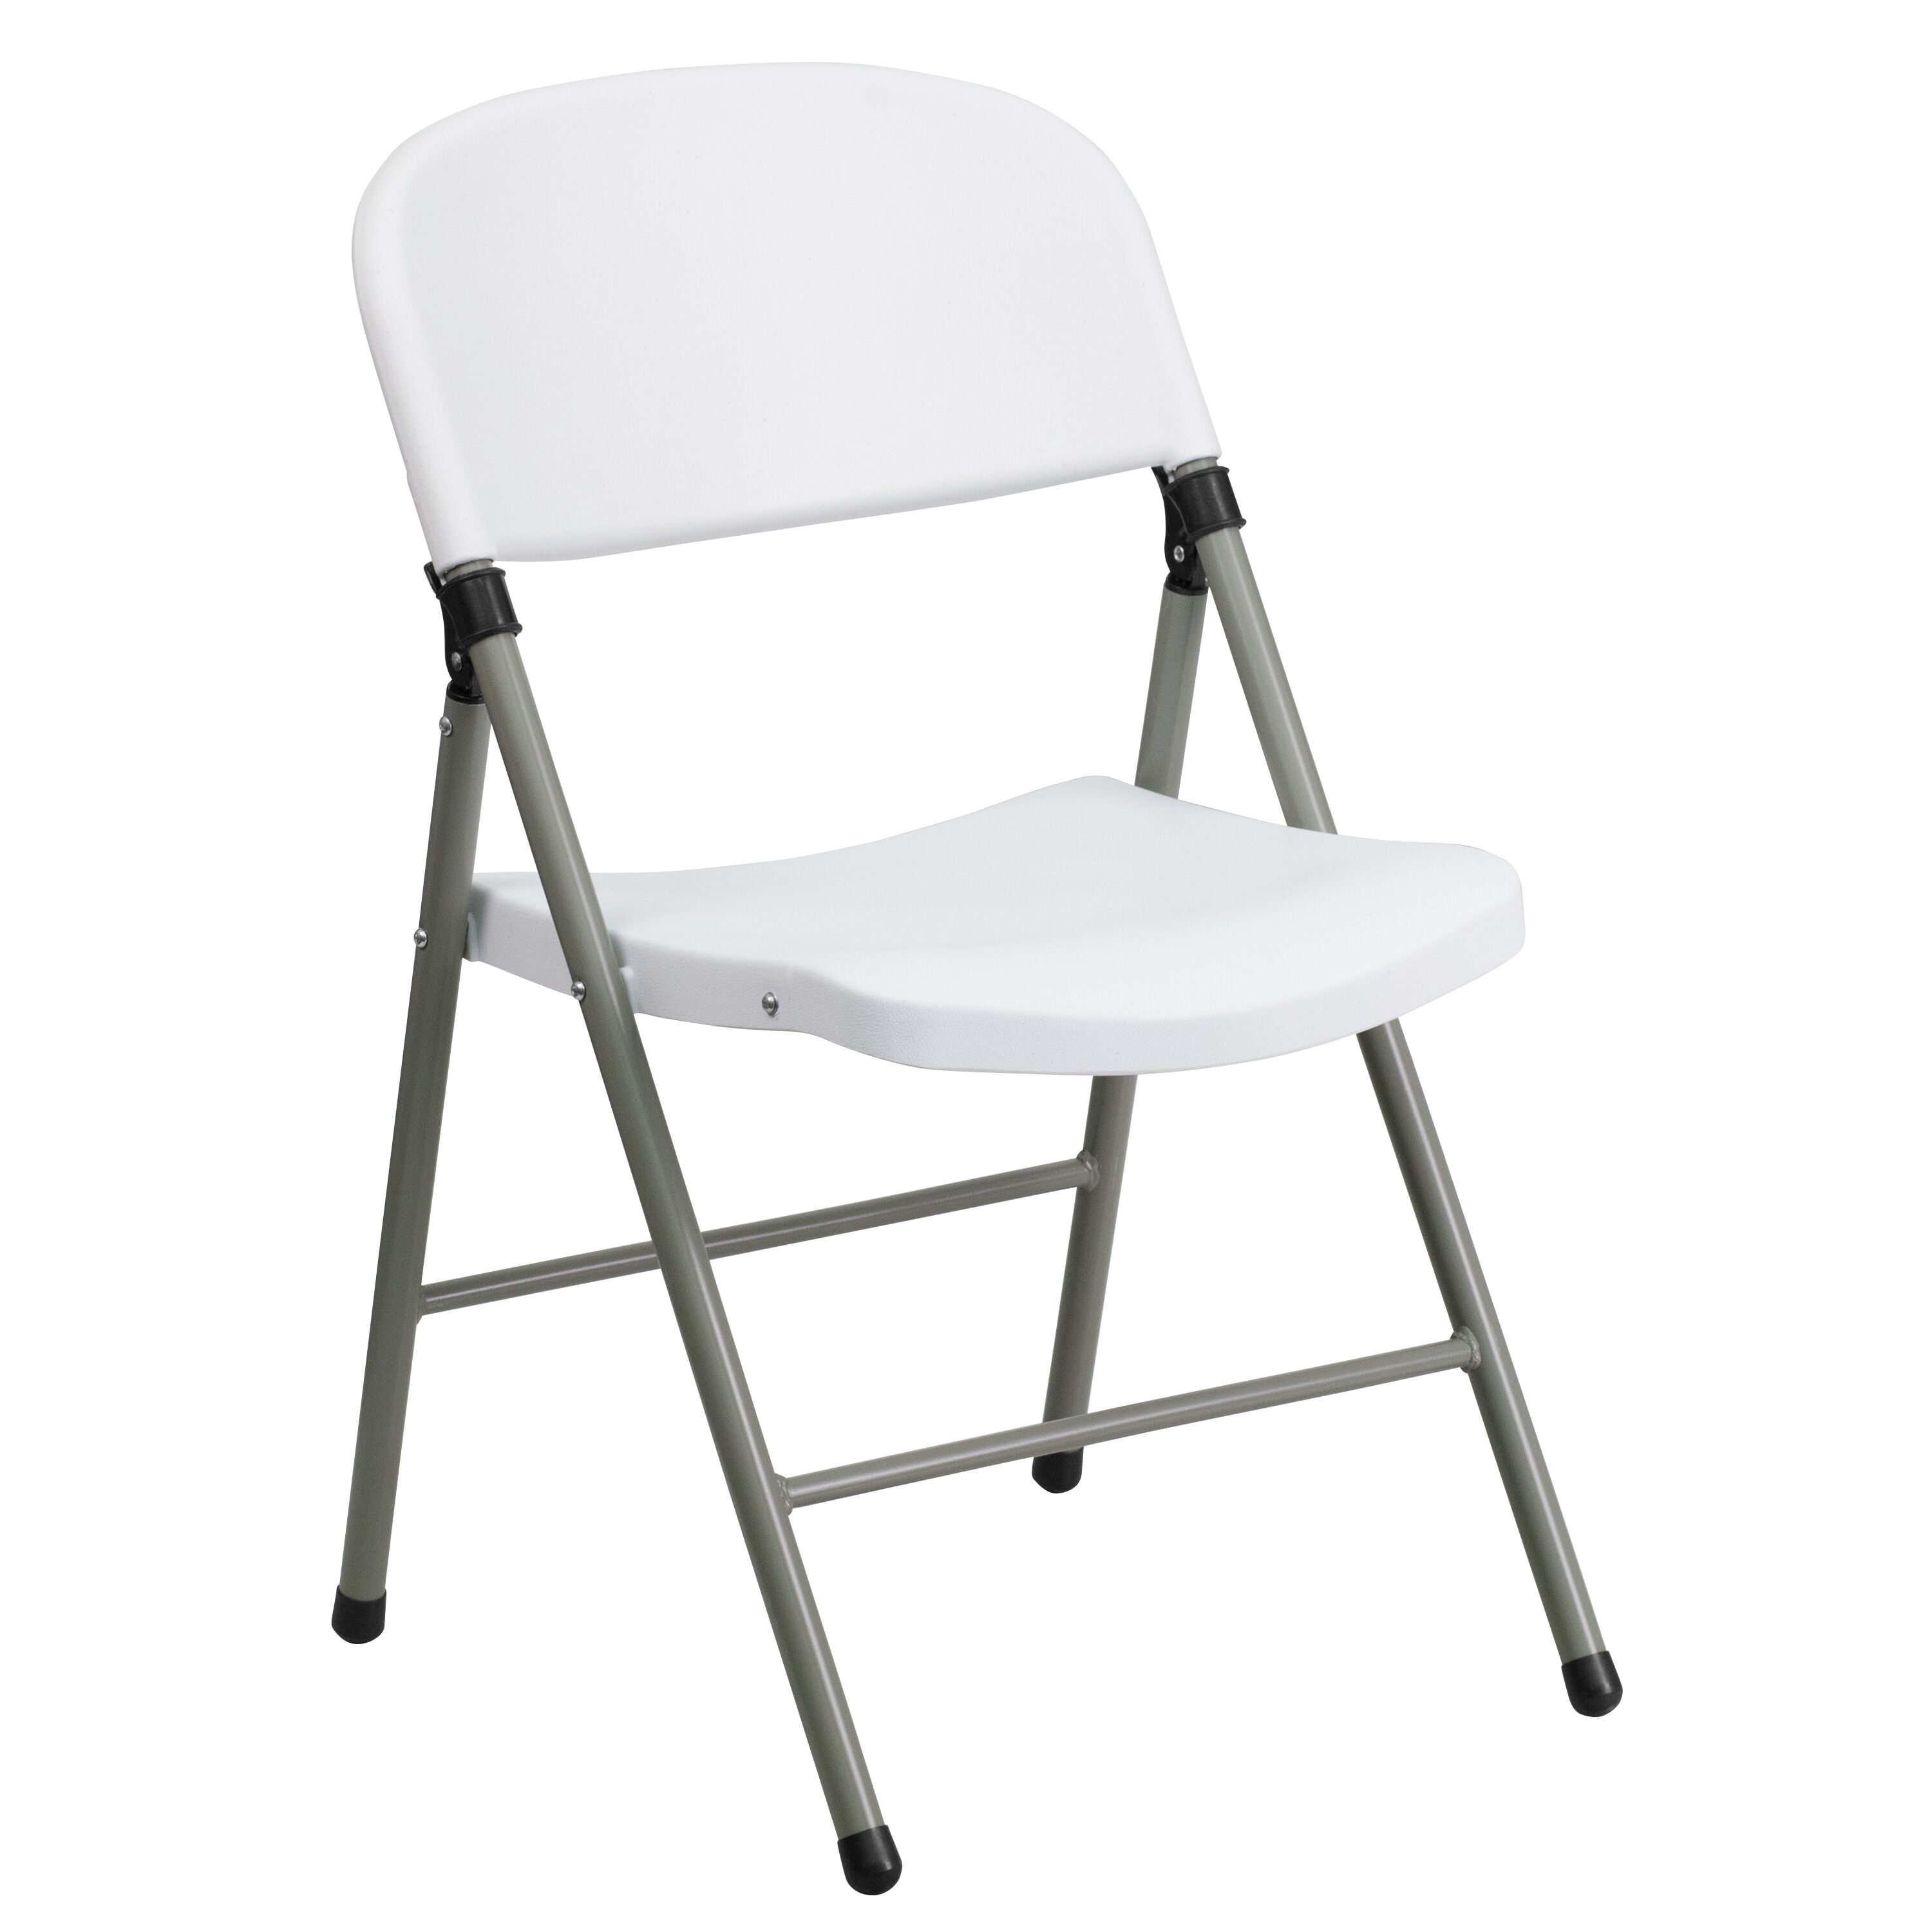 Capacity White Plastic Folding Chair With Gray Frame